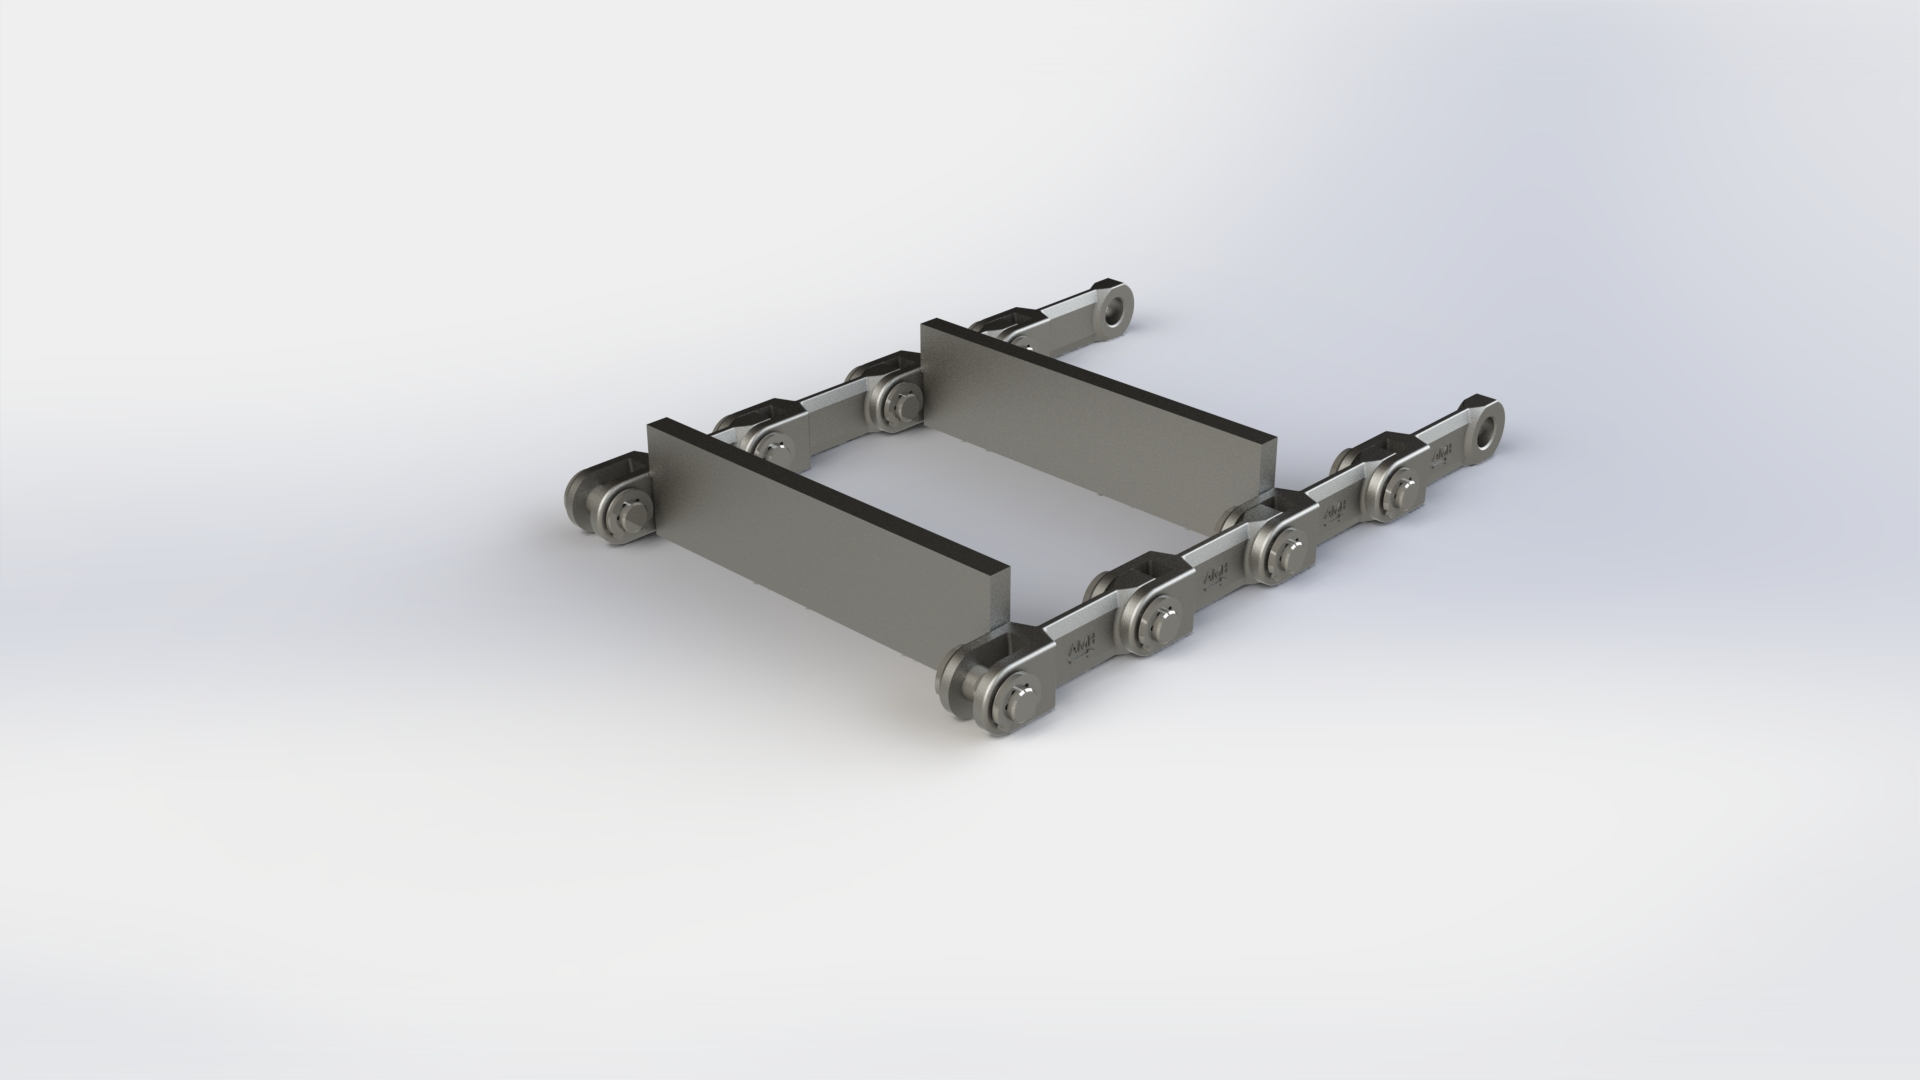 Drop Forged Chain : Drop forged chain advanced material handling